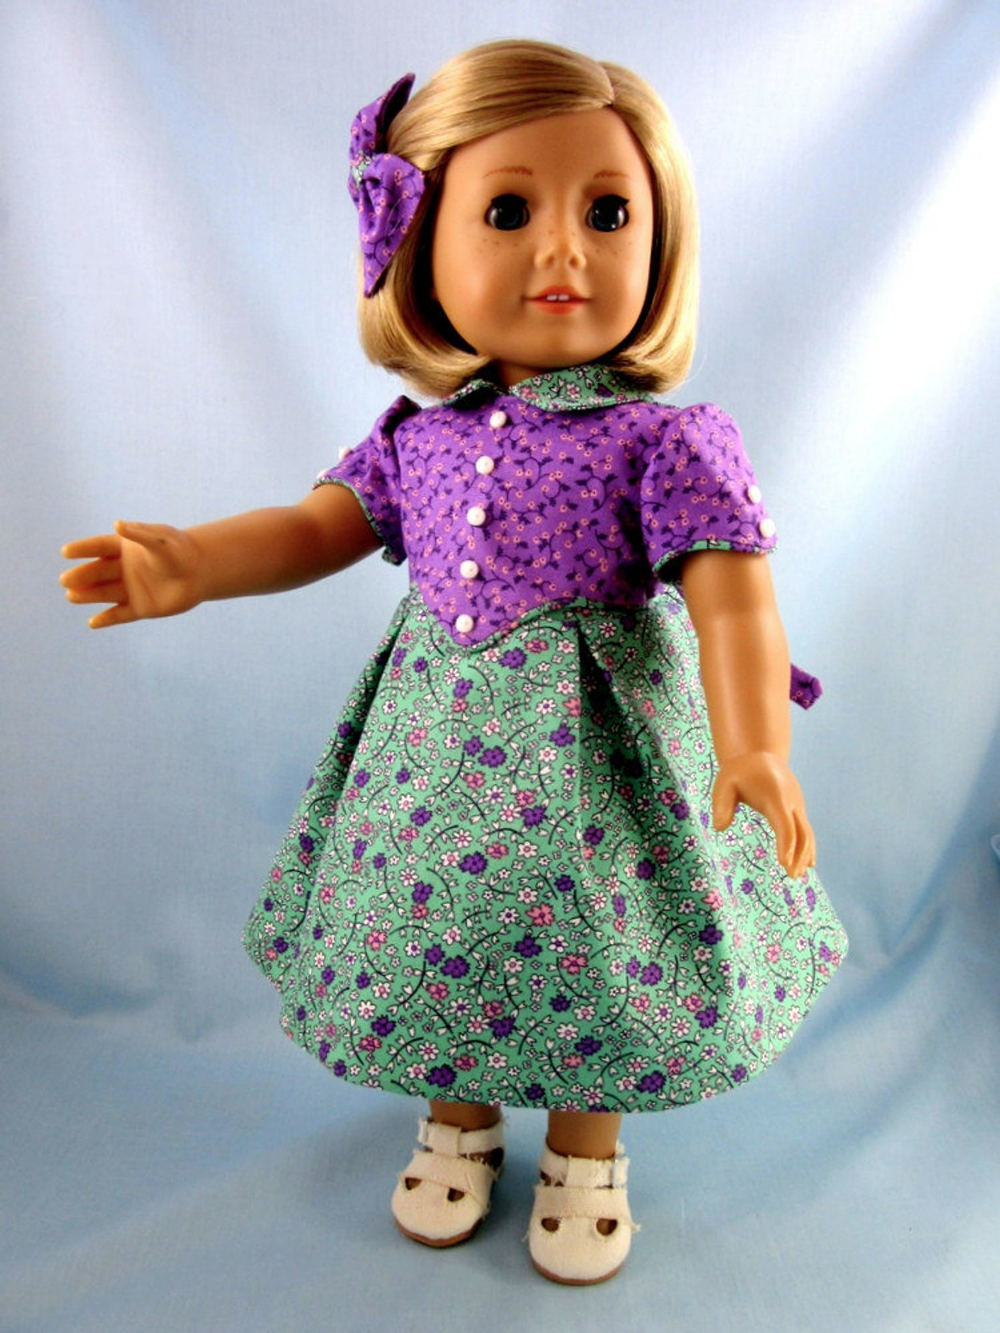 Historic Doll Clothes - 1930s Frock fits American Girl Dolls - 18 Inch Doll Clothes -Flour Sack Doll Dress - Kit or Ruthie - Feed Bag Dress #historicaldollclothes